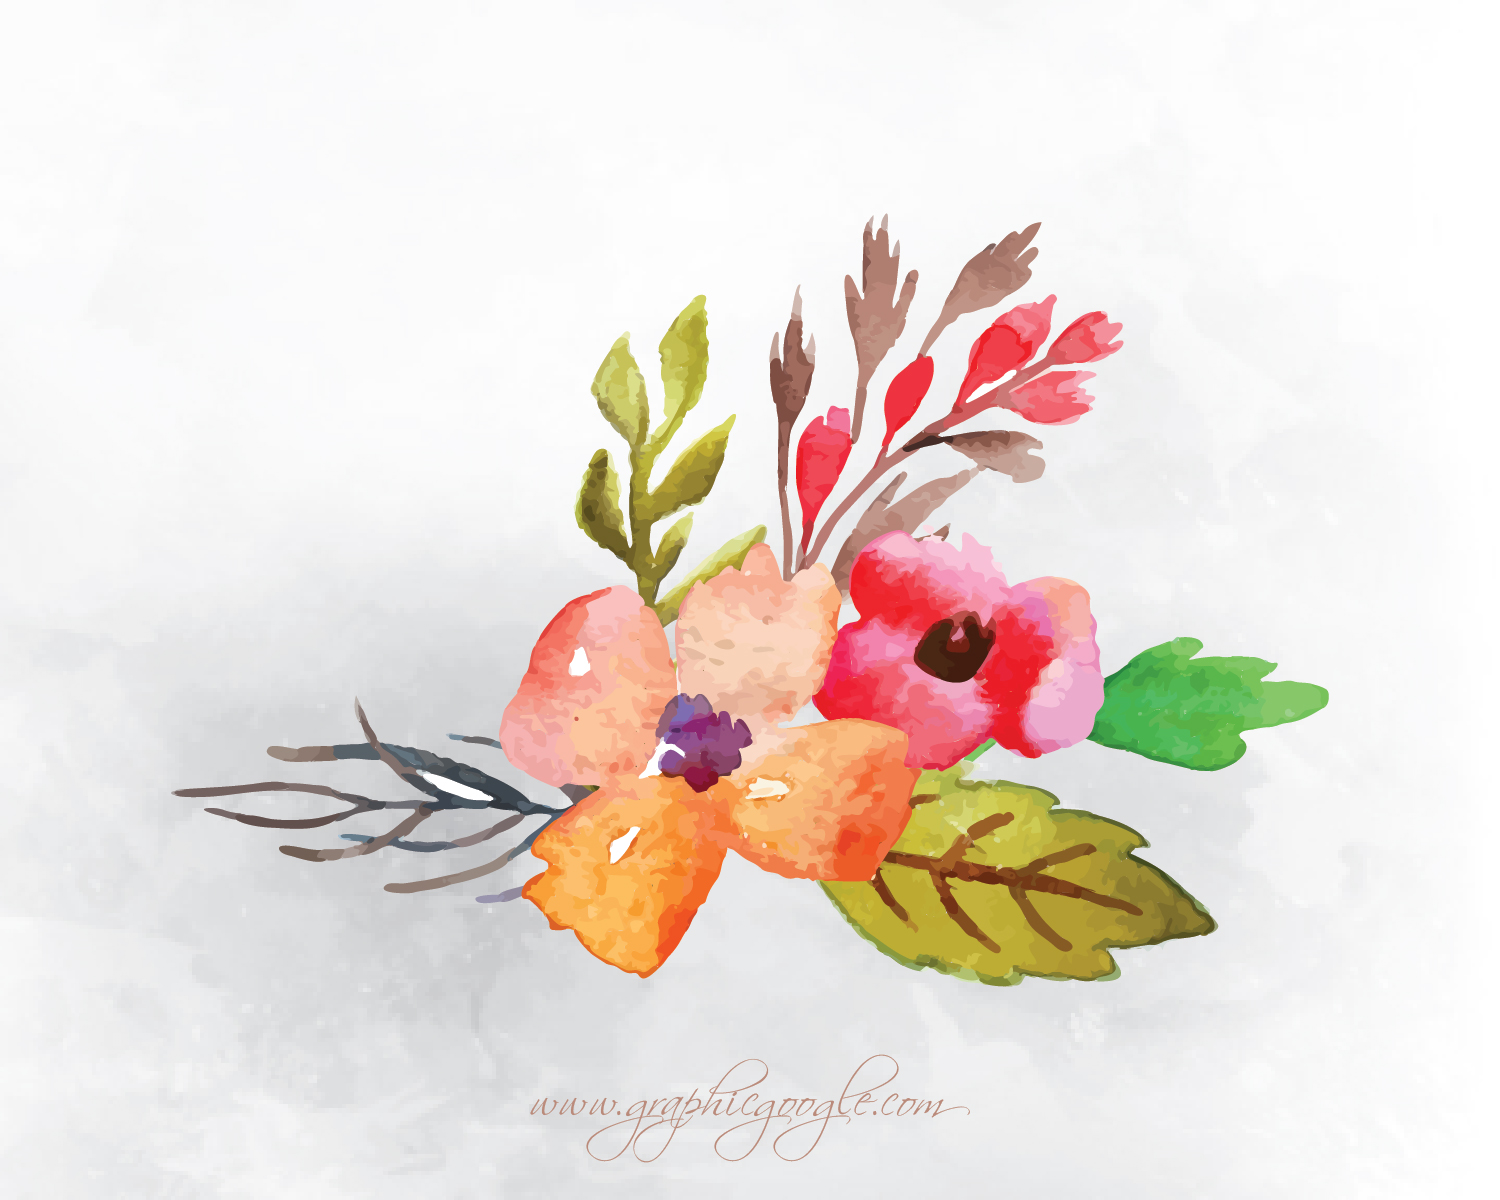 9 Free Watercolor Flower Vectors For Designers-01